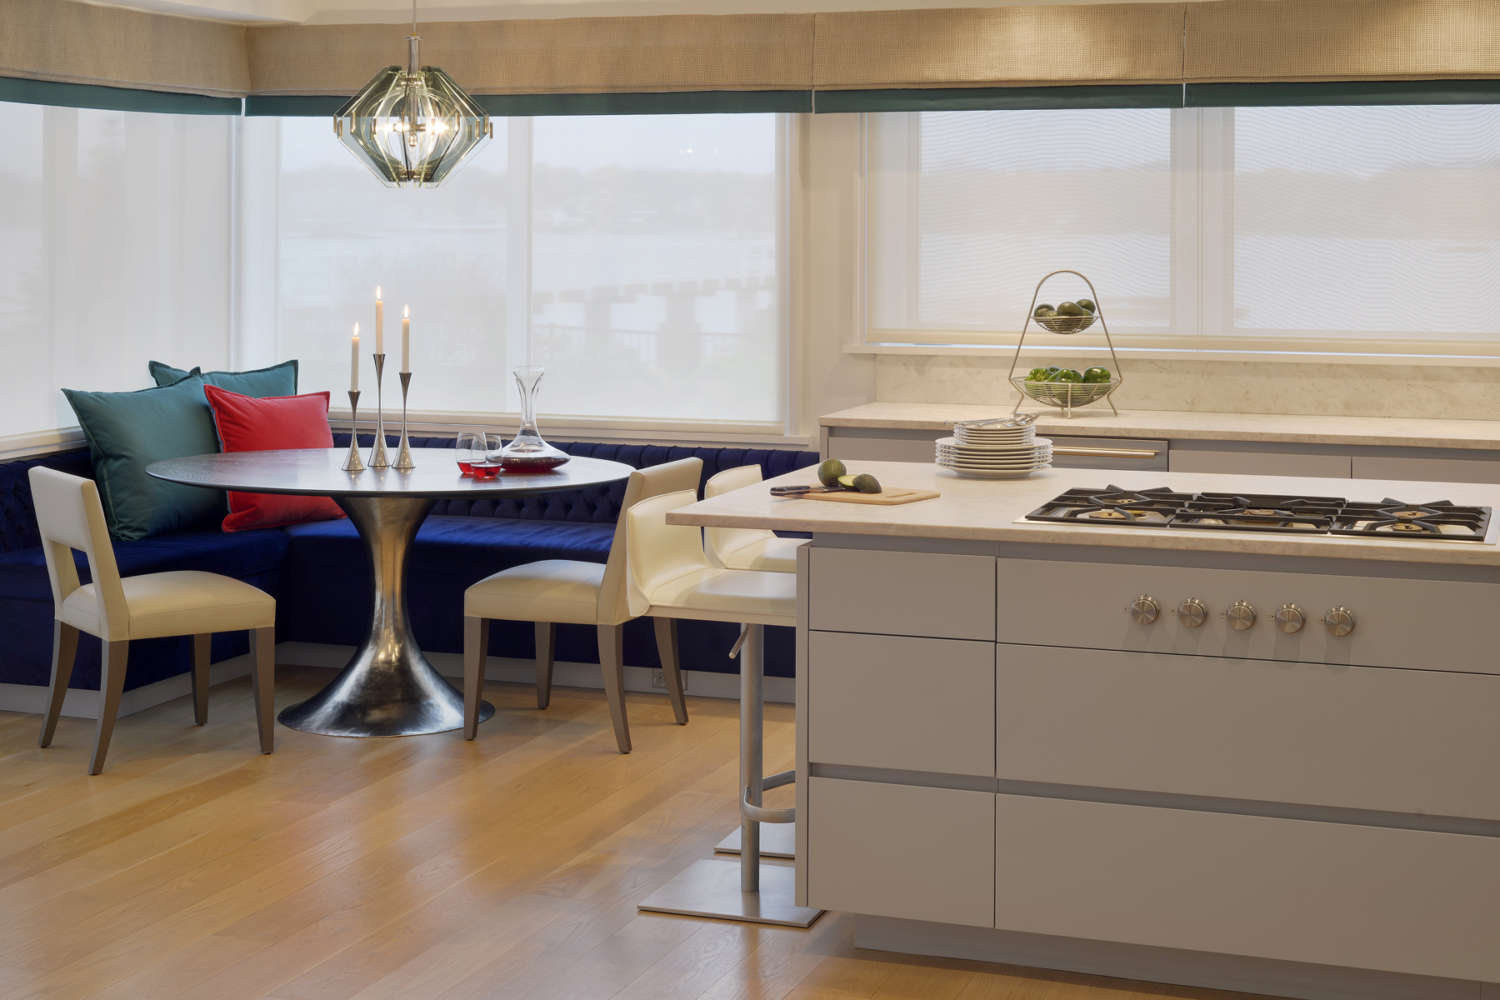 Light contemporary kitchen features flat panel, frameless Bilotta Cabinetry in Benjamin Moore Pigeon Grey, light quartz countertops, and oak hardwood flooring. Banquette area features a tulip table with with seating. Design by Randy O'Kane, CKD, of Bilotta Kitchens.